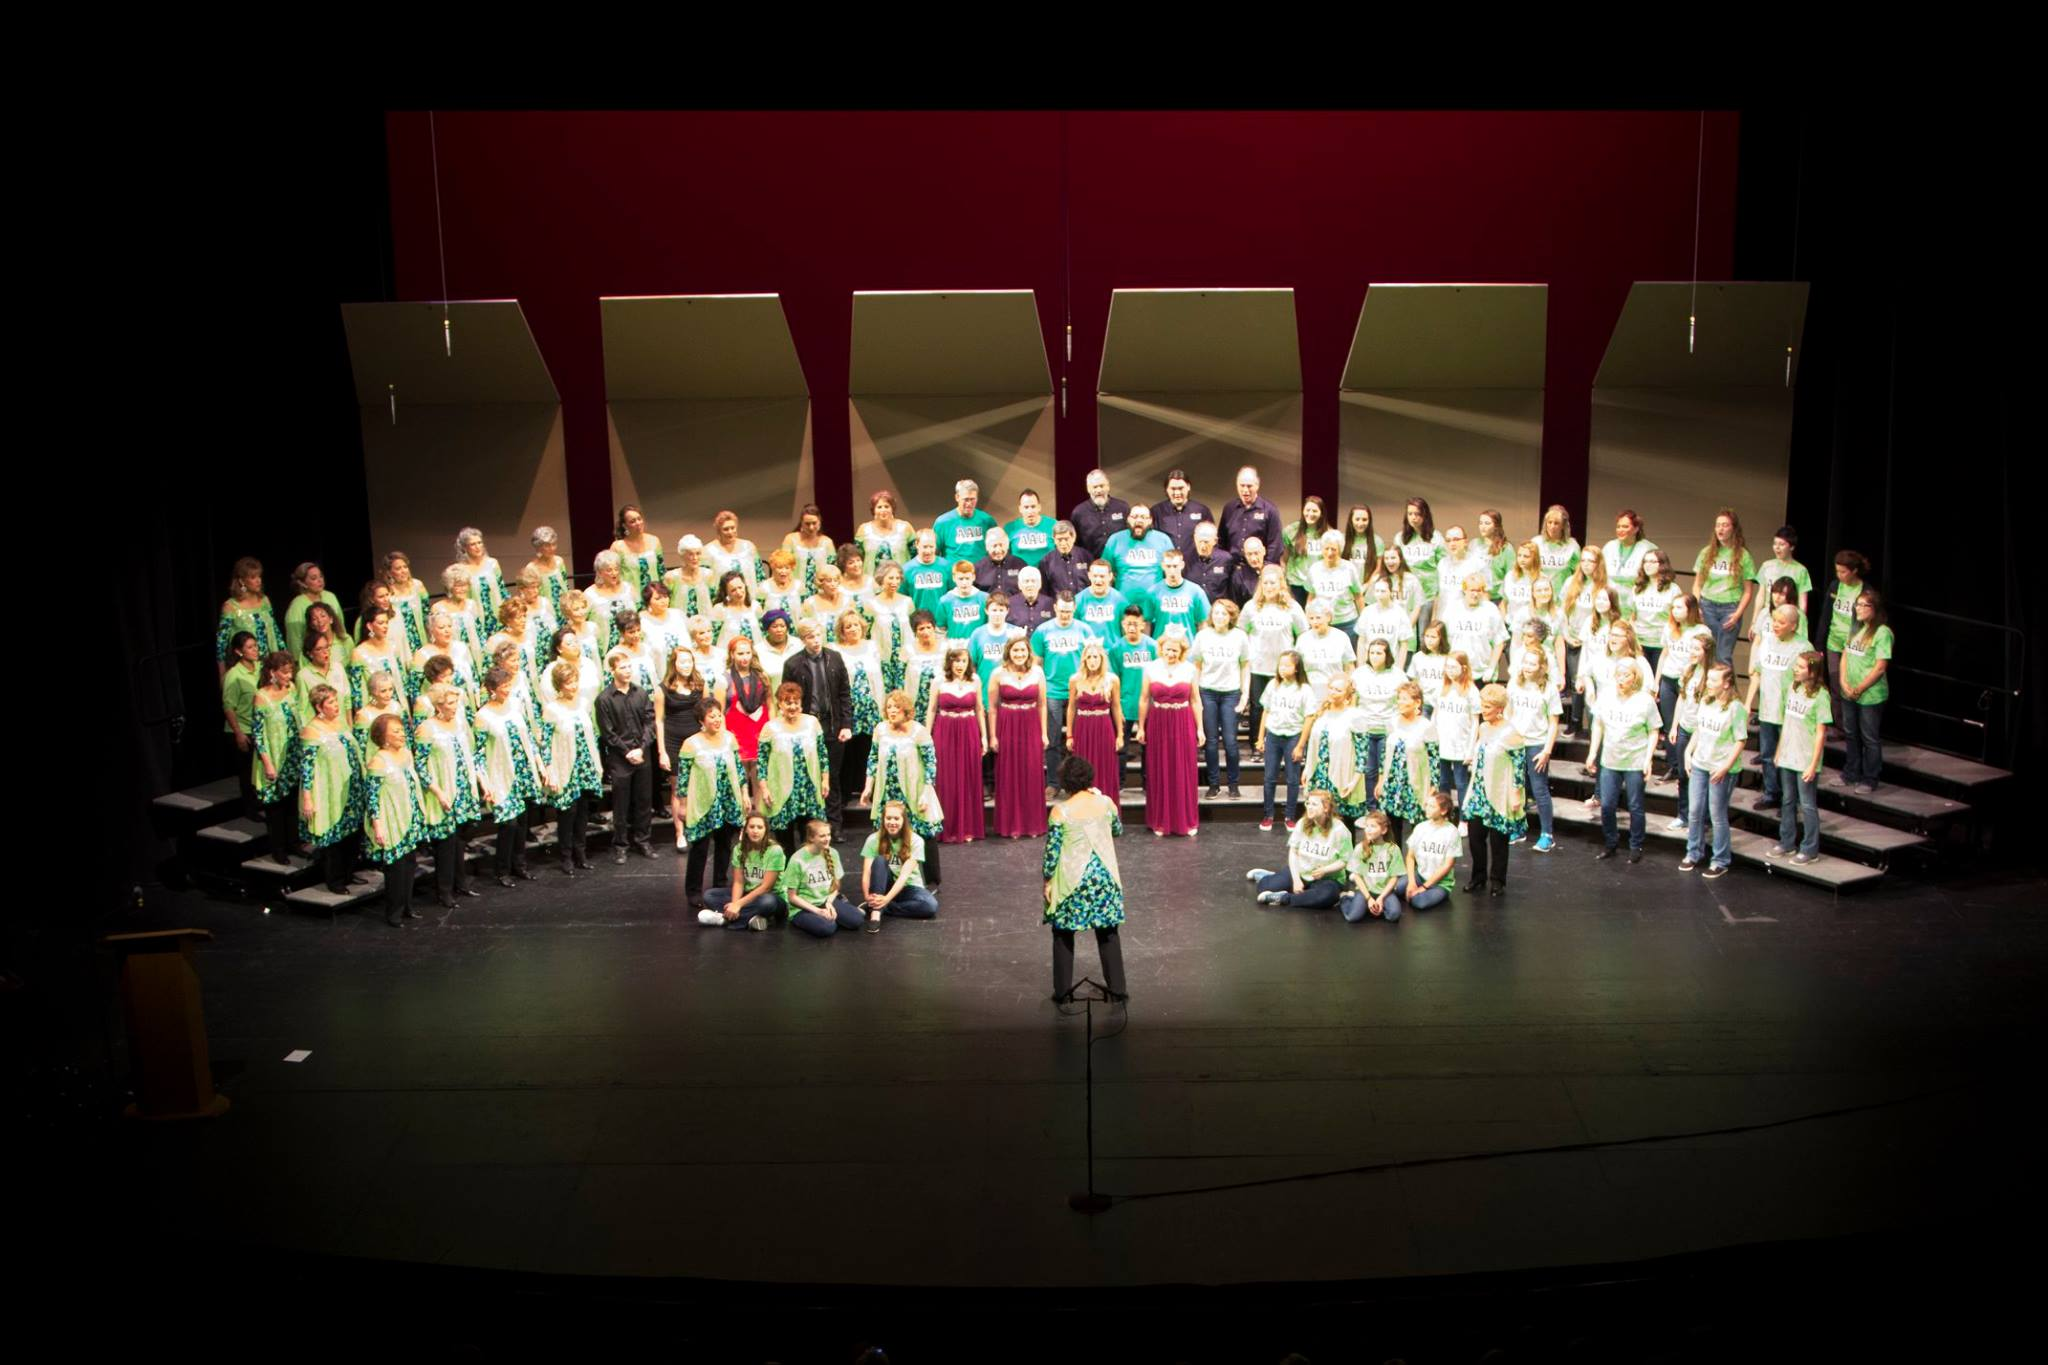 2016 Celebrate the Music Fall Show Finale with Alaska Sound Celebration, MIdnight Sons Chorus, AAU Boys and Girls and LoveNotes Quartet